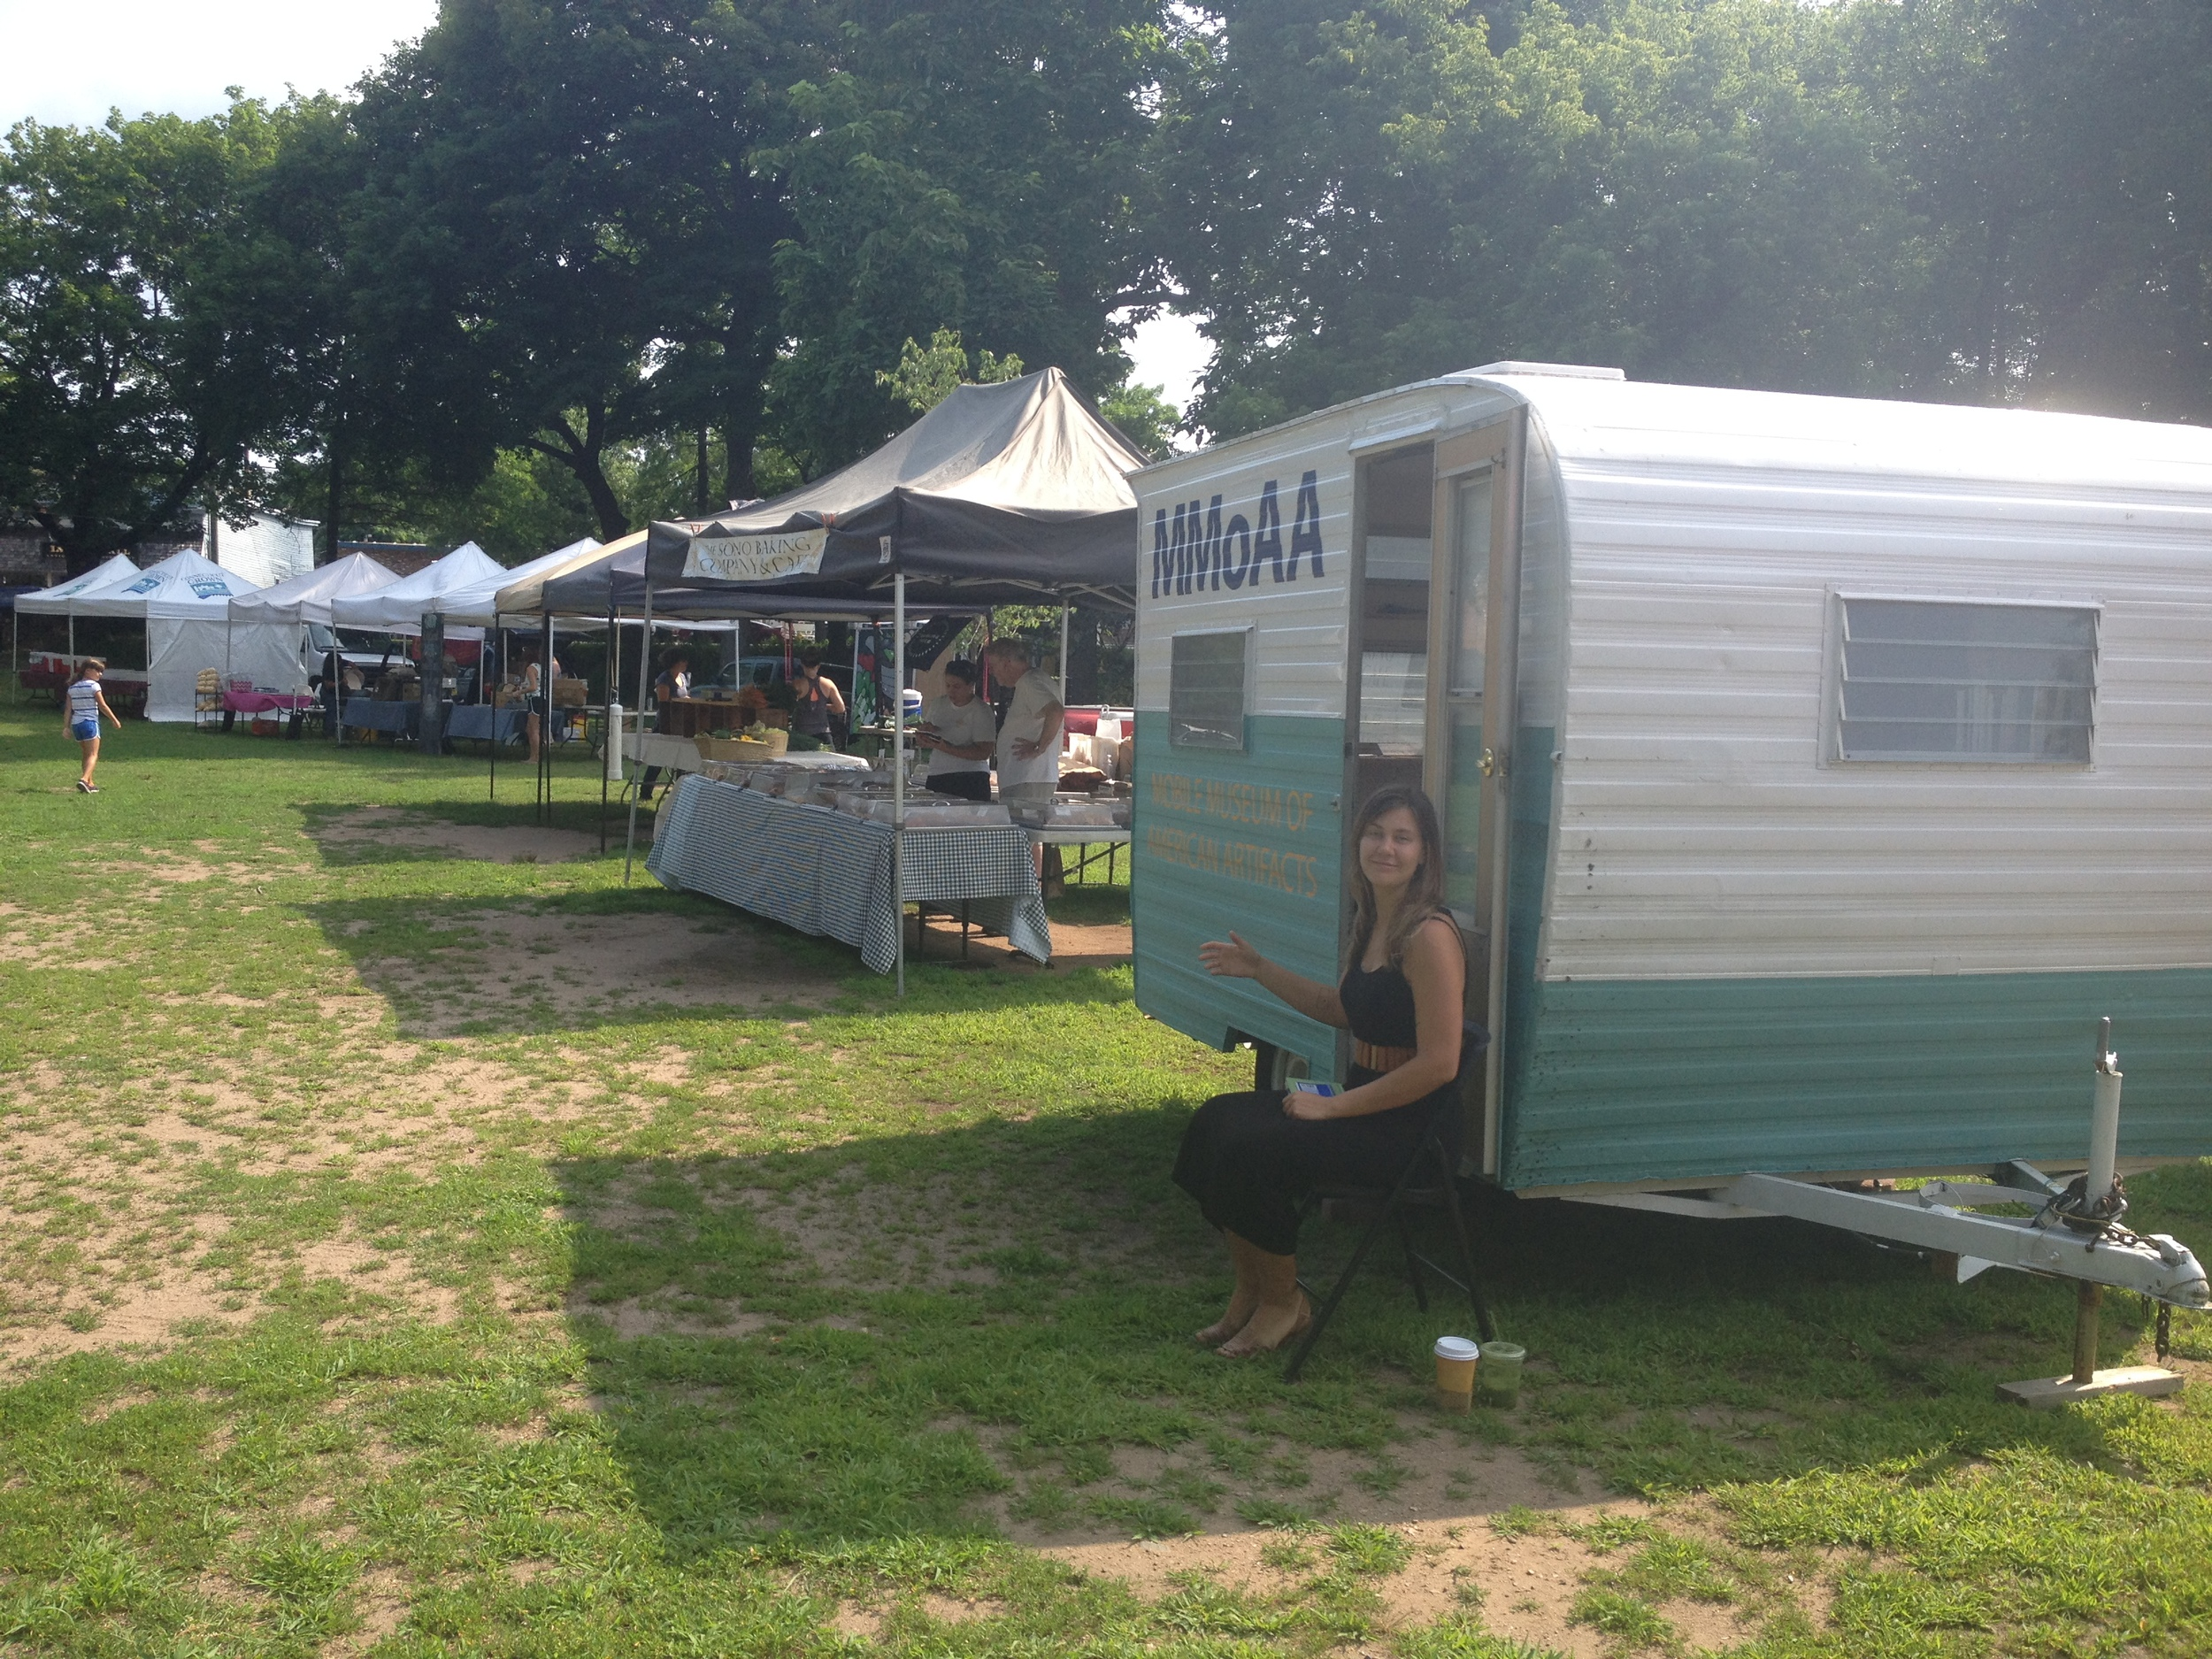 Laurelin sets up for the Edgewood Park Farmer's Market on July 14, 2014.